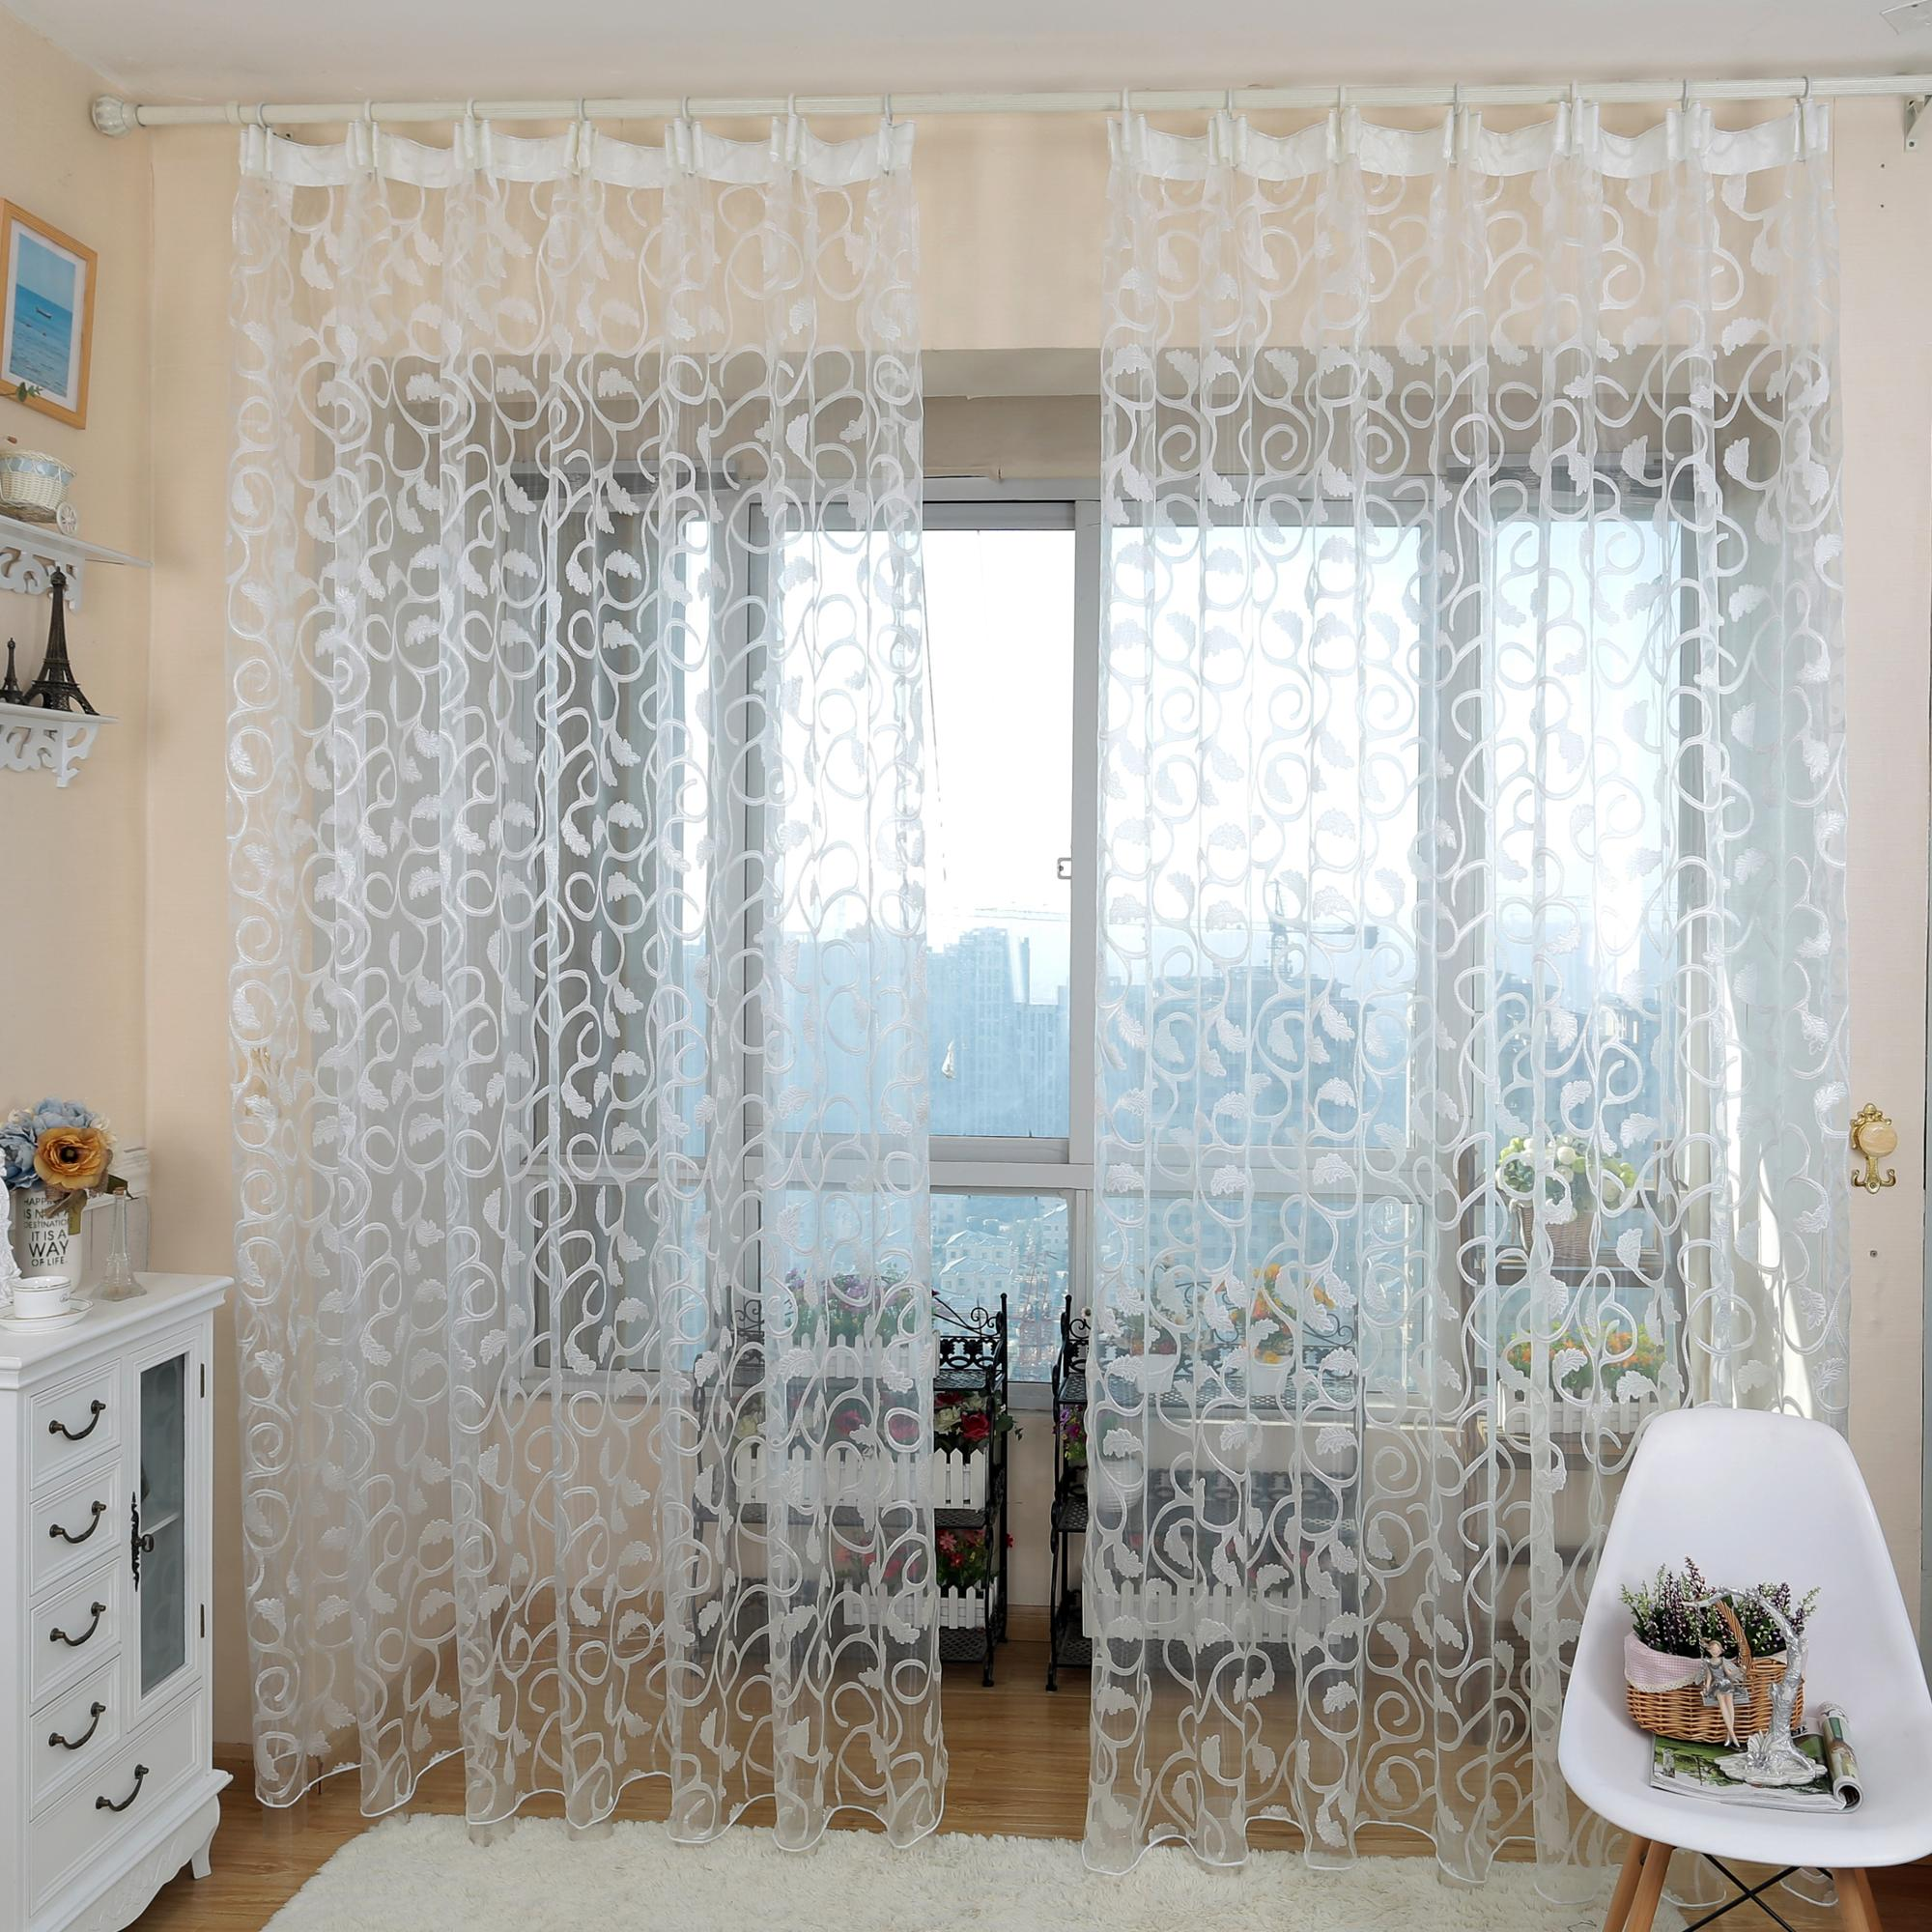 Short window curtains for bedroom window treatments drapery floral ...